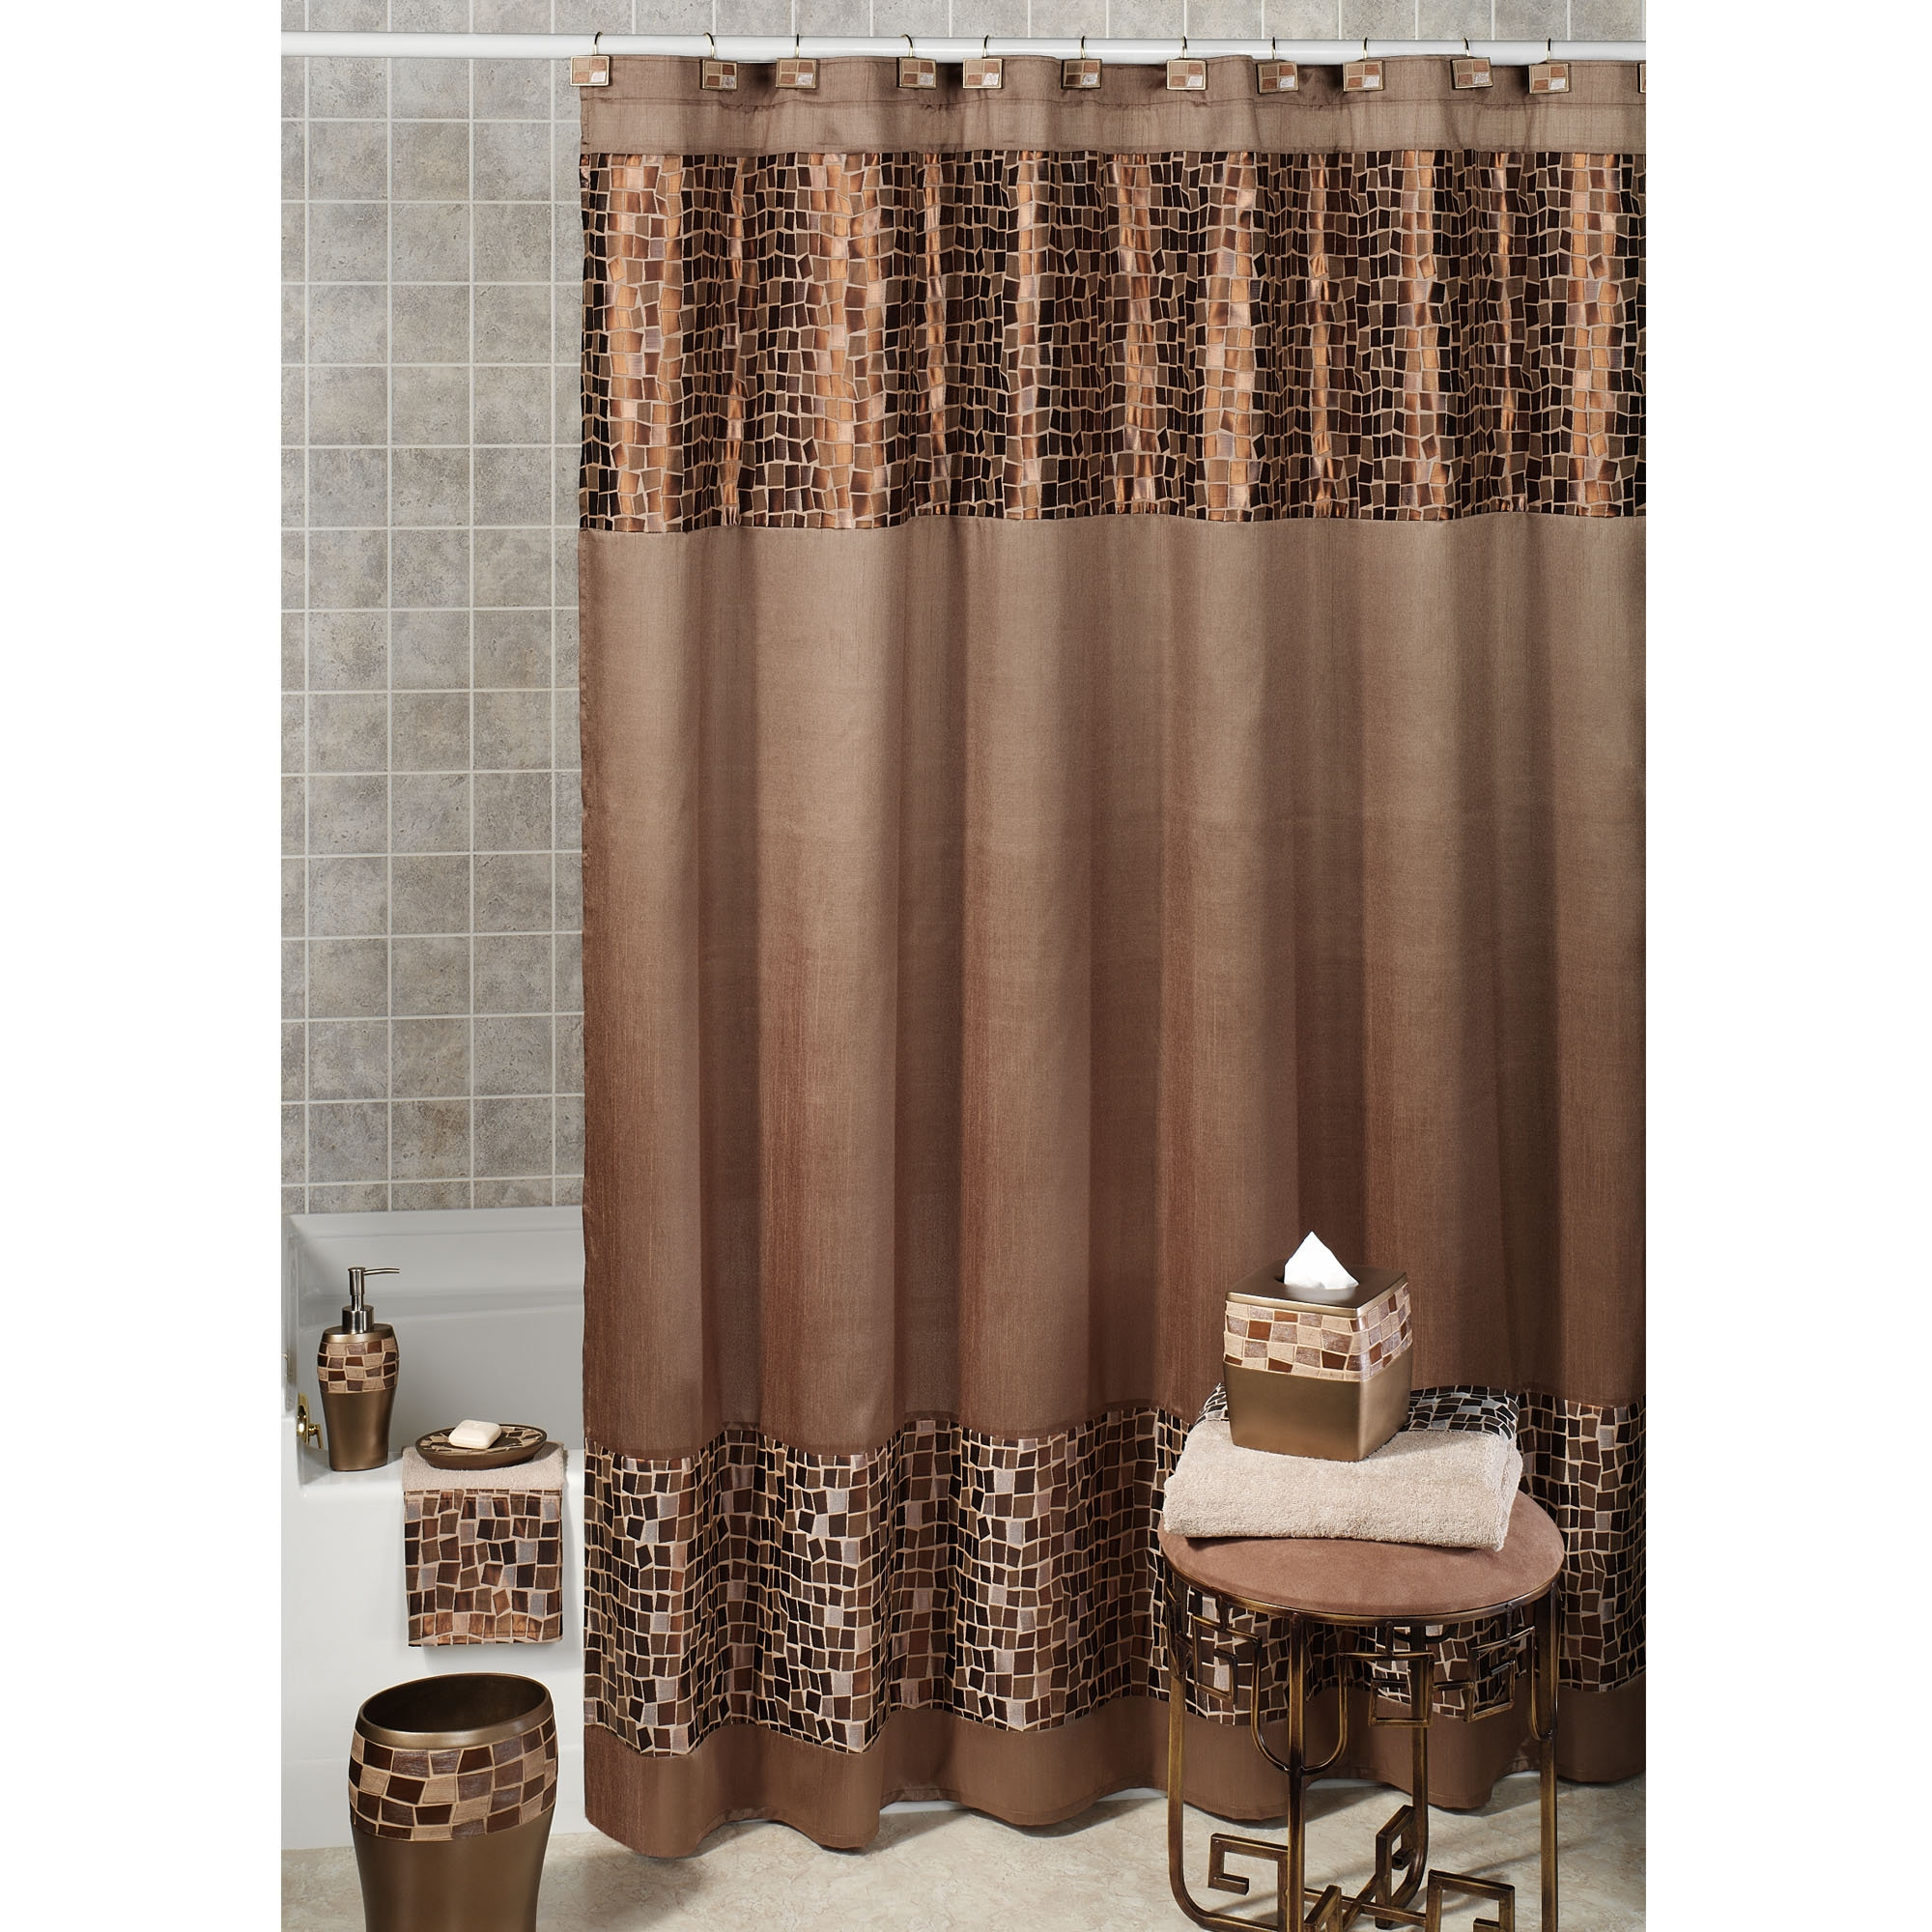 Extra Large Shower Curtain Rings • Shower Curtains Ideas